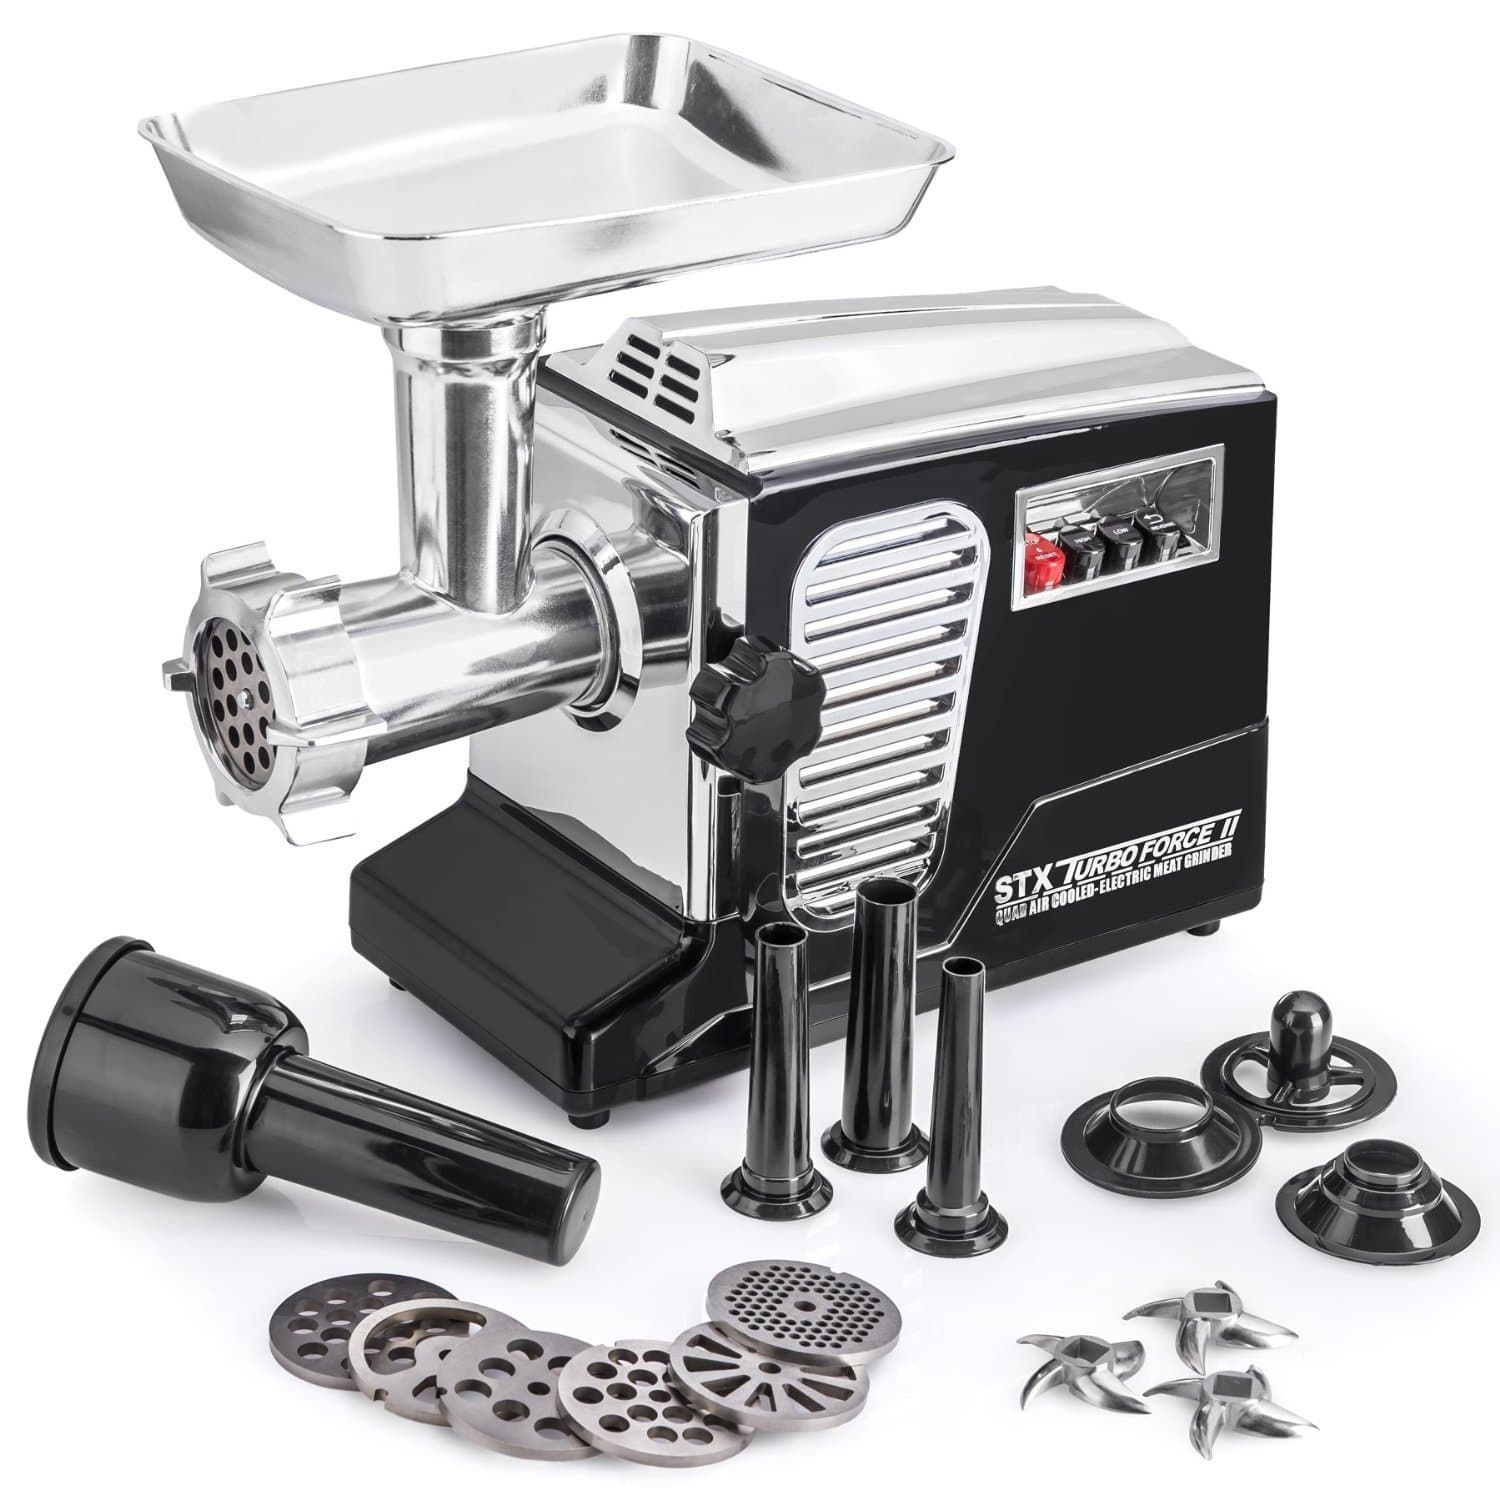 gourmia gmg525 meat grinder reviews